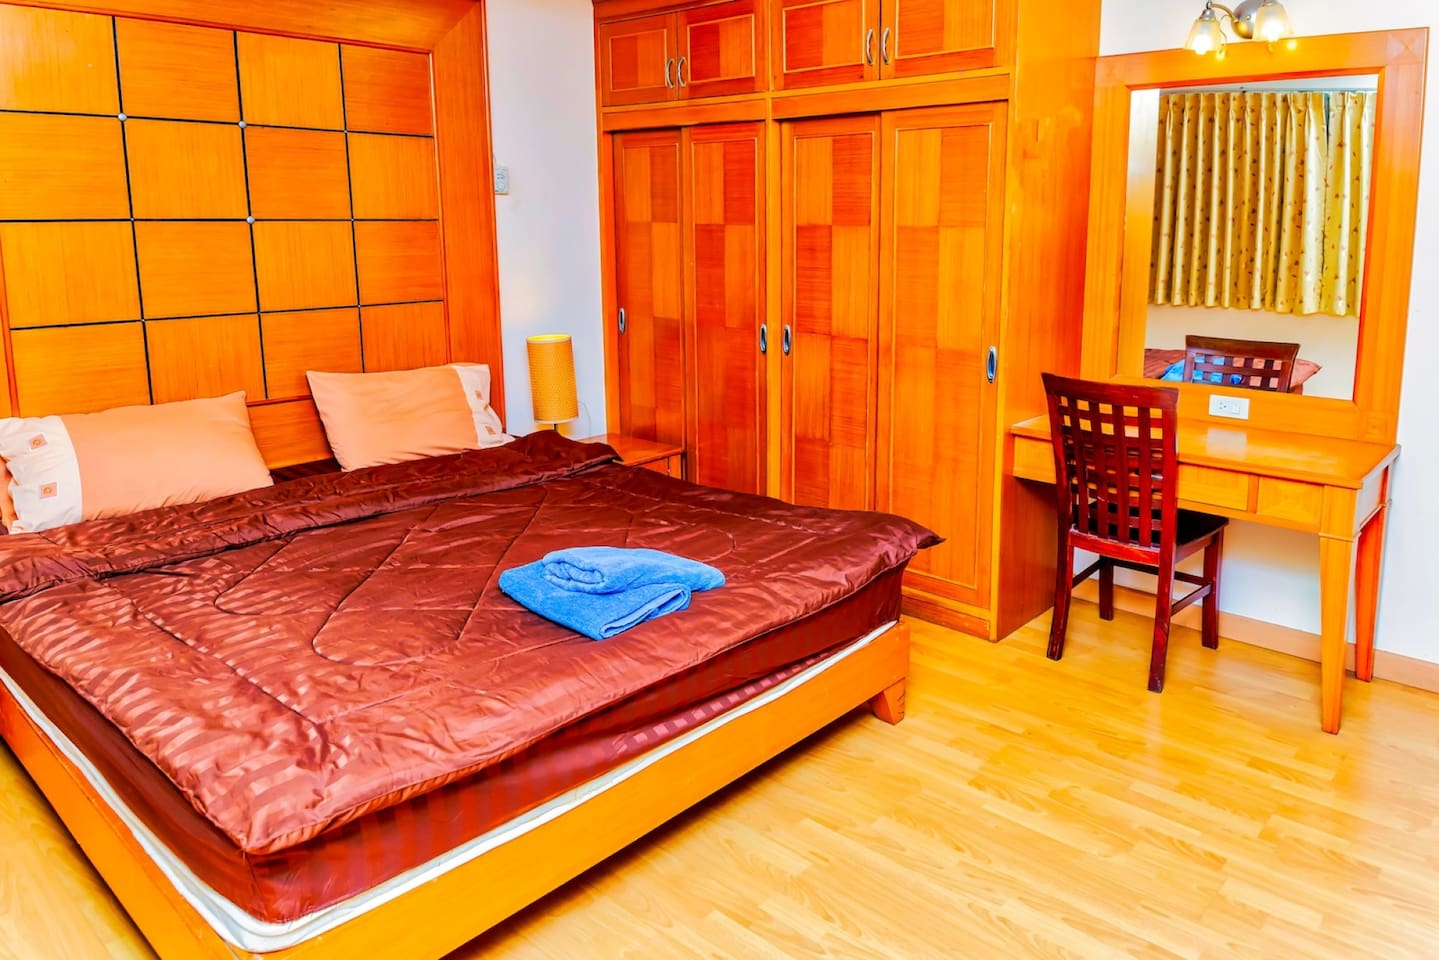 Apartment New 5 King Room in the Center of Pattaya City  Best area  photo 18752417